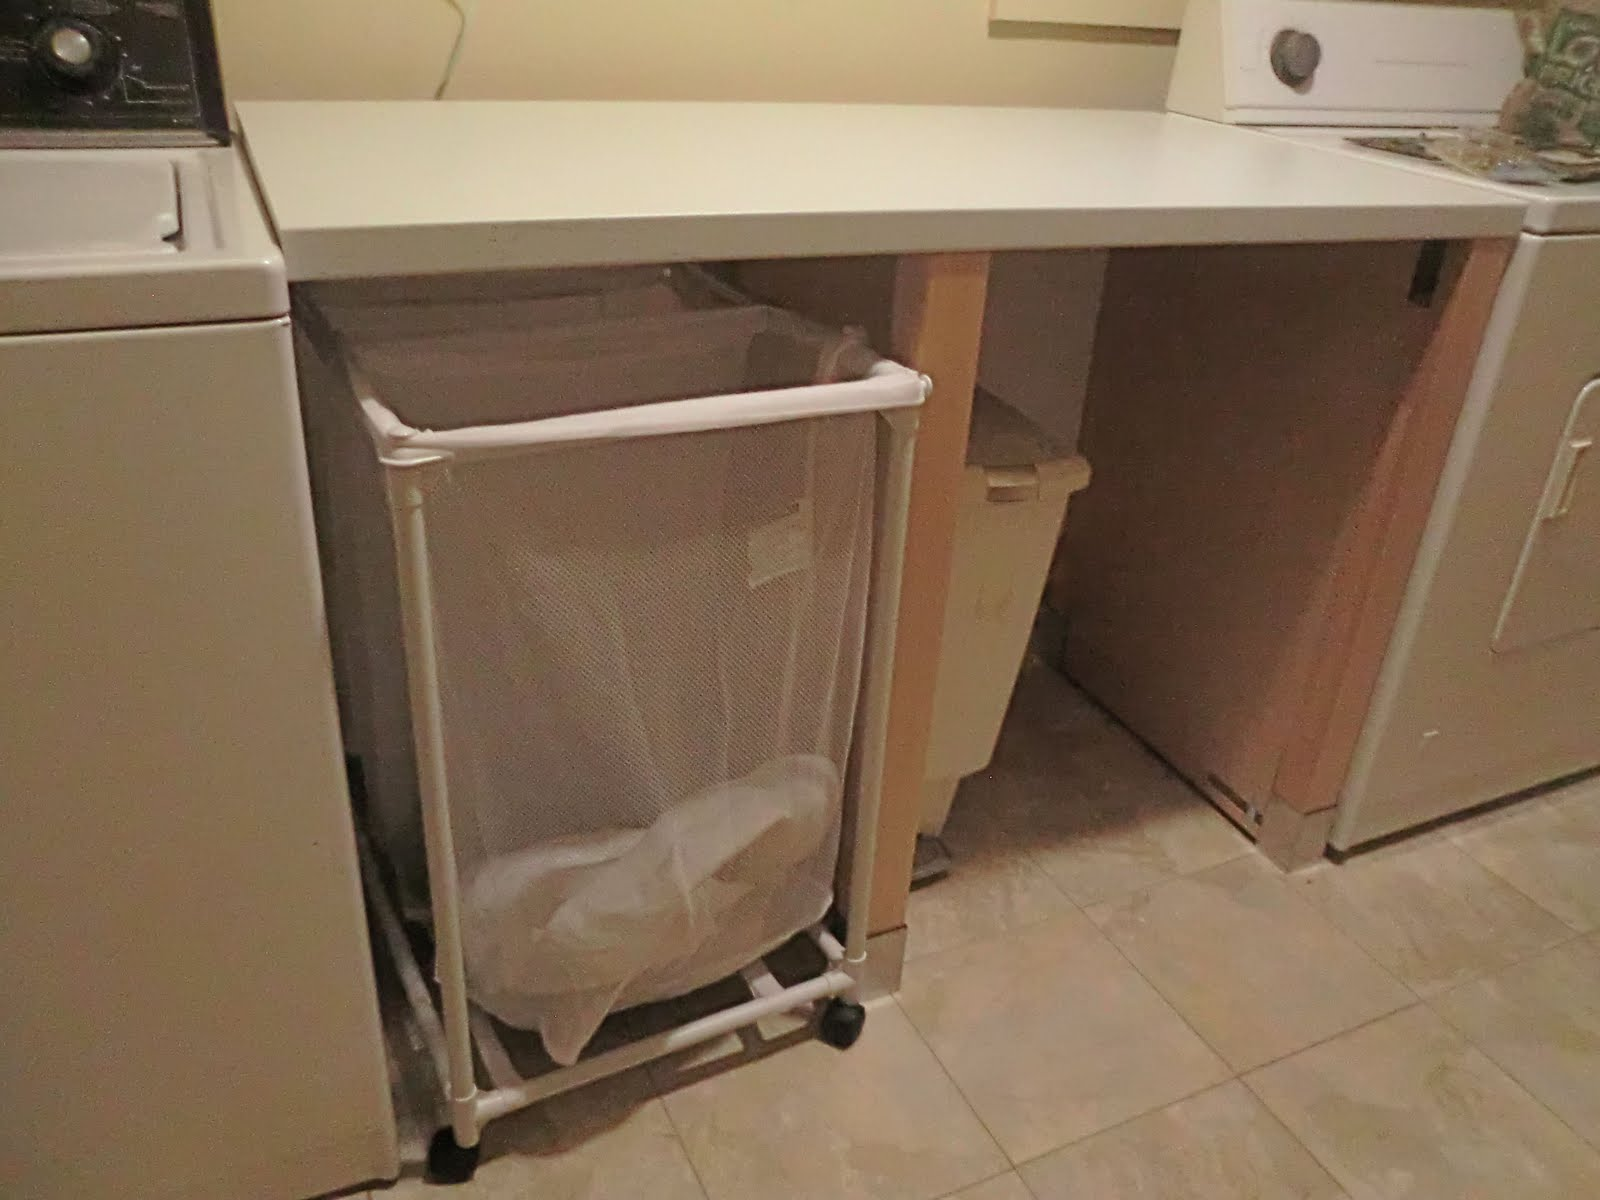 Pragel Countertop Laundry Folding Station Out Of A Dishwasher Cabinet Ikea Hackers